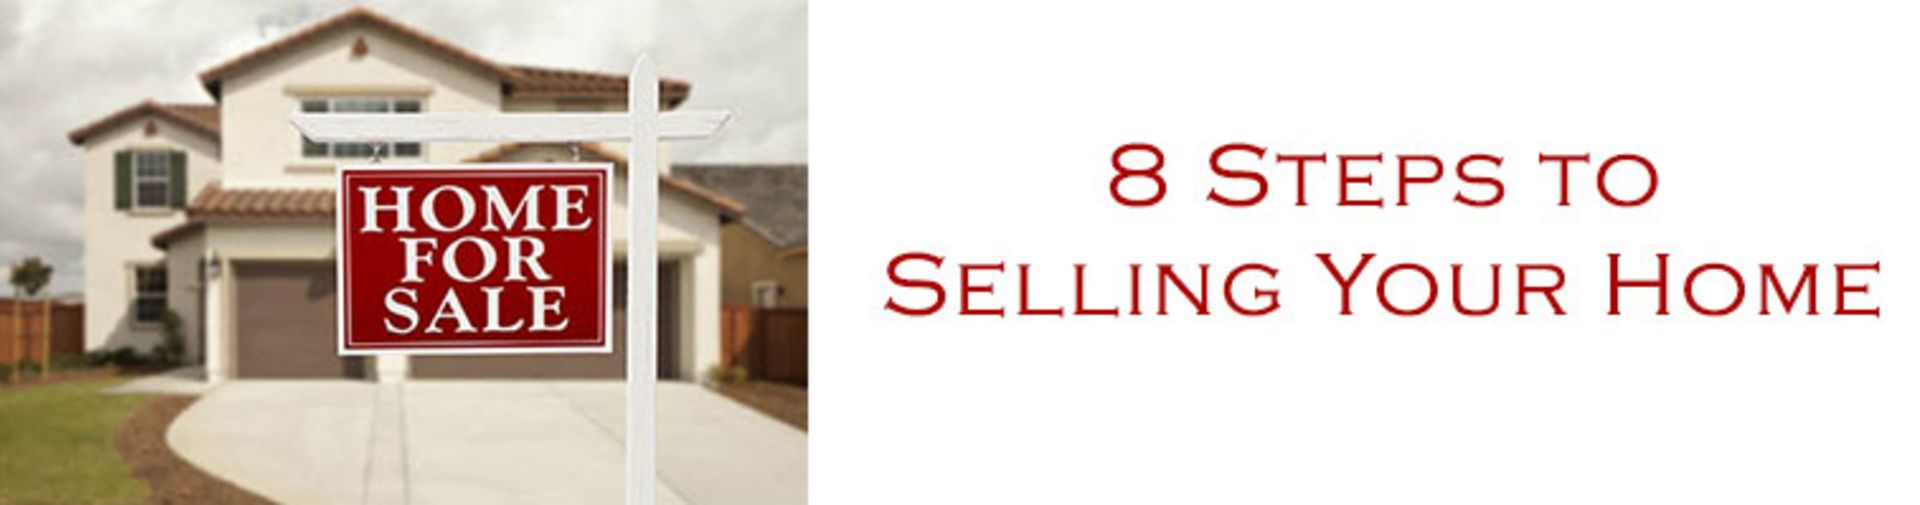 SELLERS: EIGHT STEPS TO SELLING YOUR HOME